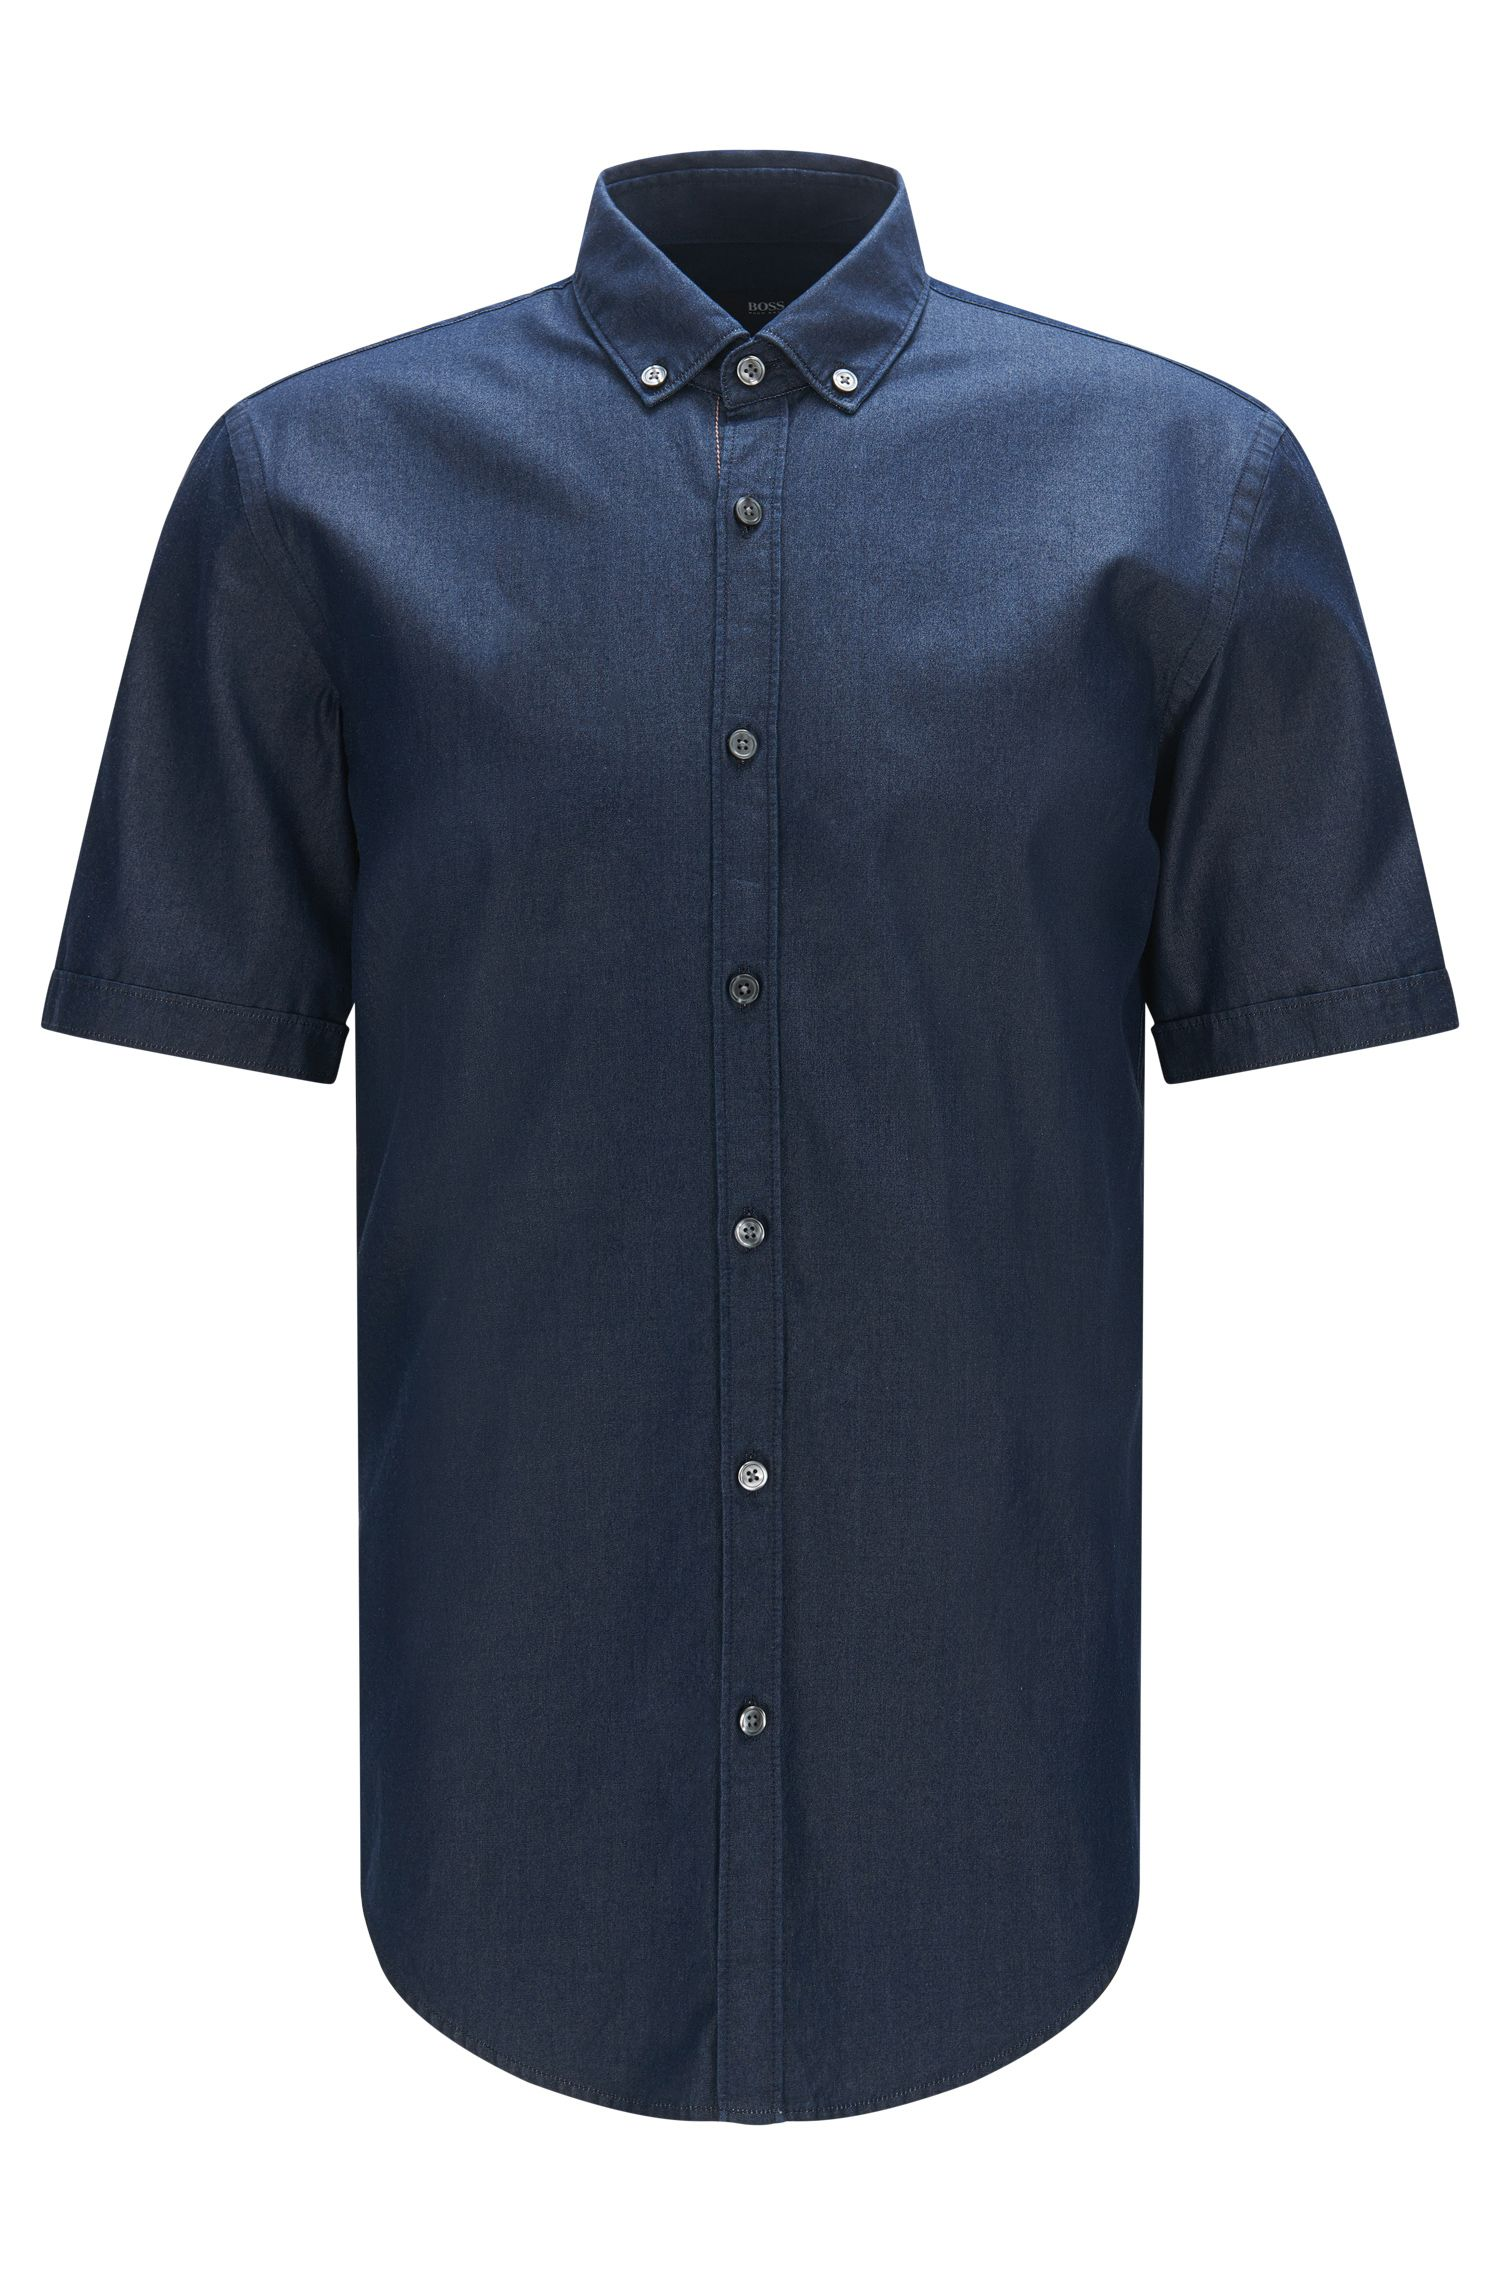 Chambray Cotton Button Down Shirt, Slim Fit | Rik